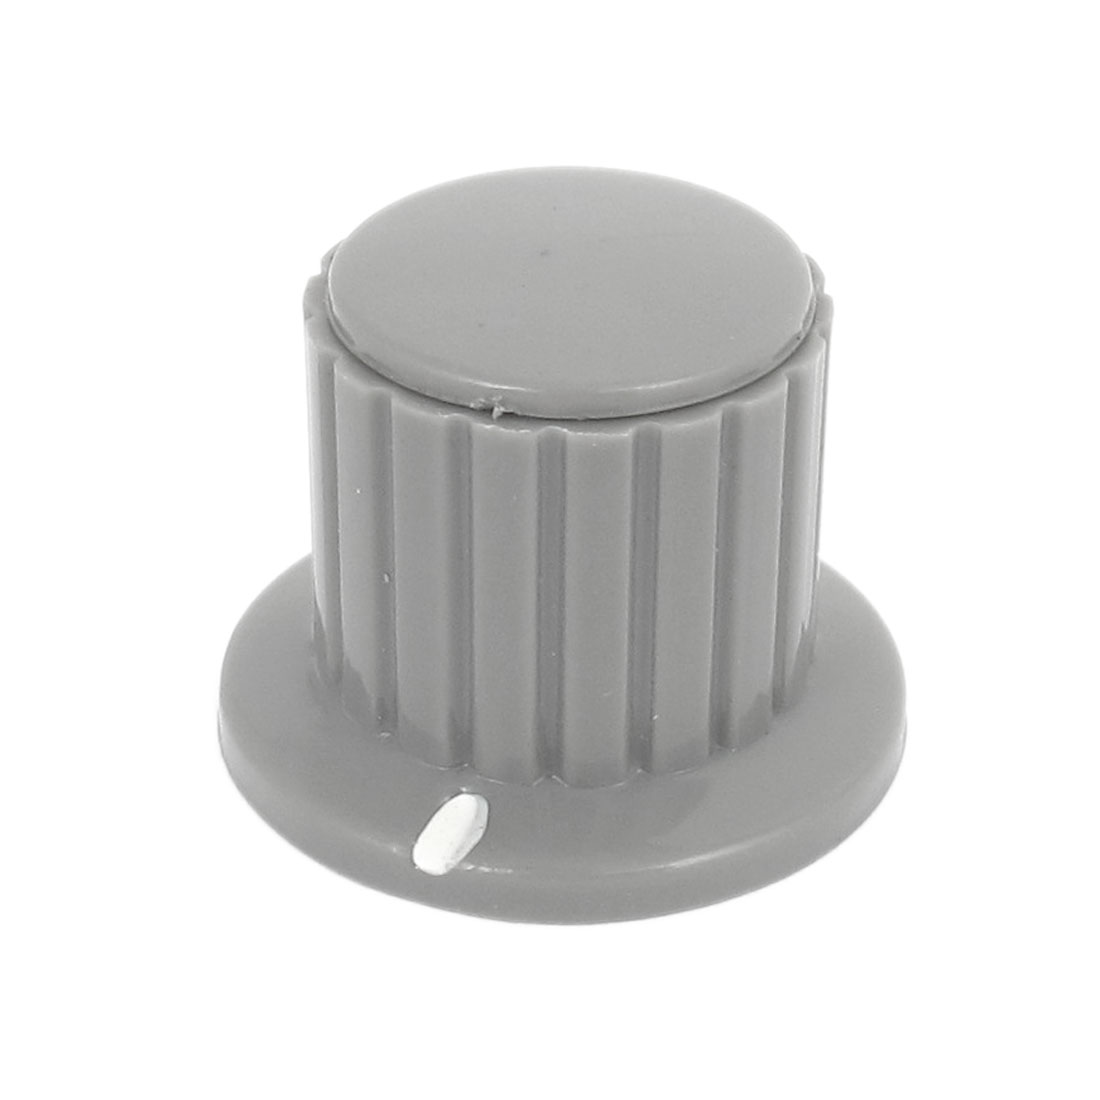 Replacement 6mm Dia Audio Volume Control Potentiometer Knobs 25mmx20mm